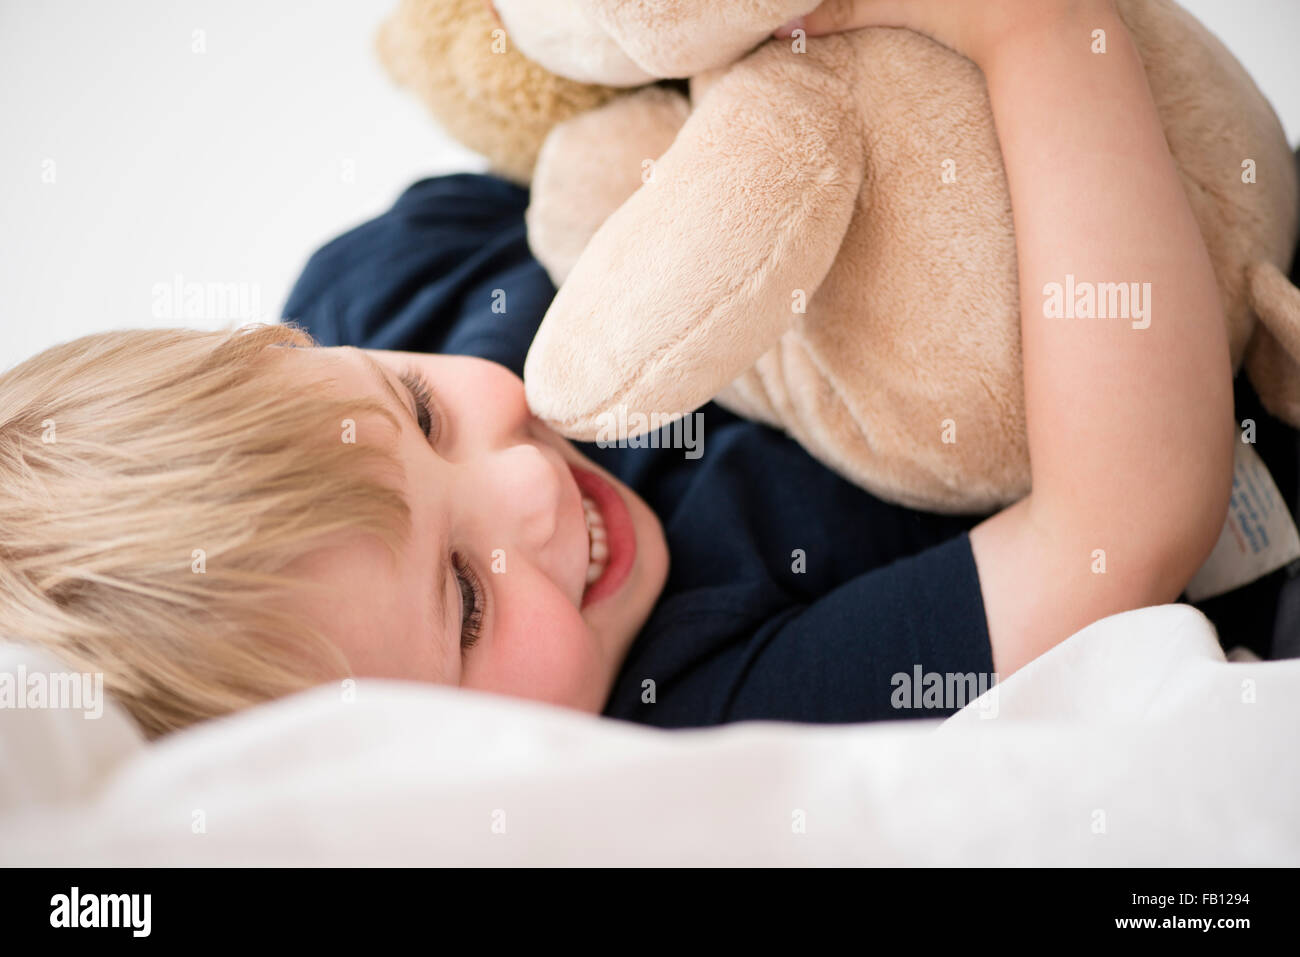 Smiling boy (2-3) with toy lying down on bed - Stock Image